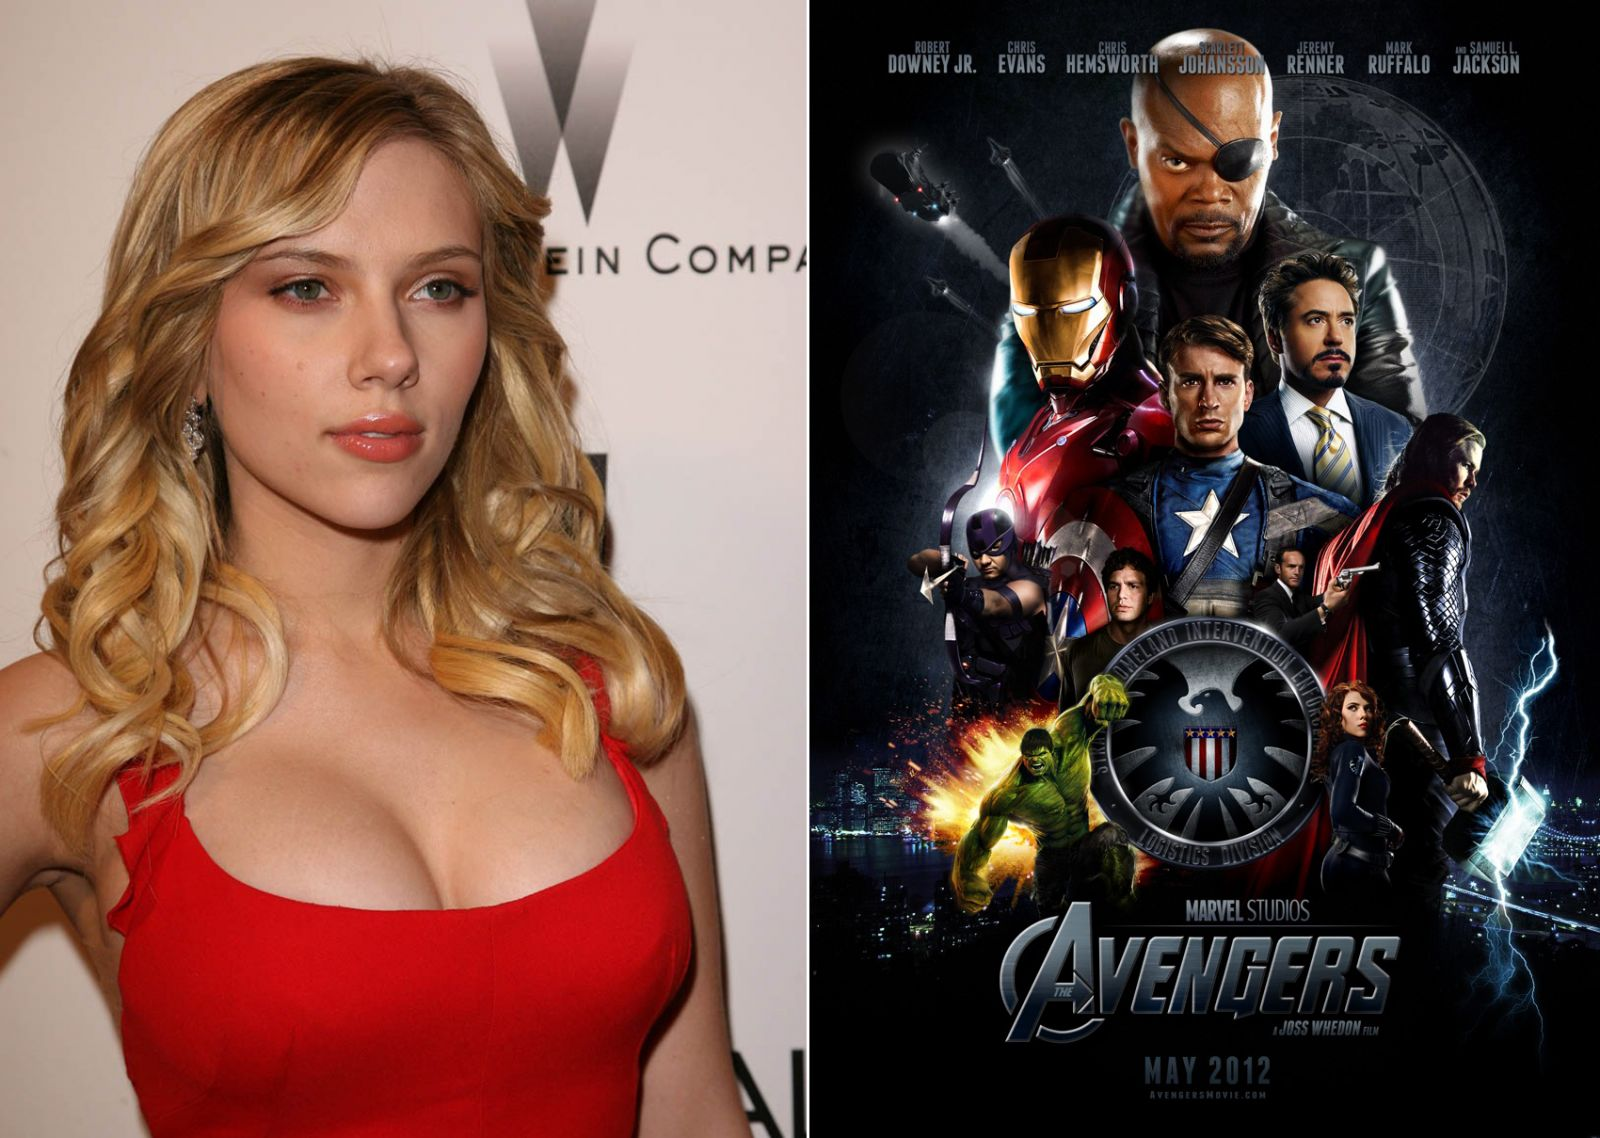 Scarlett Johansoon & The Avengers